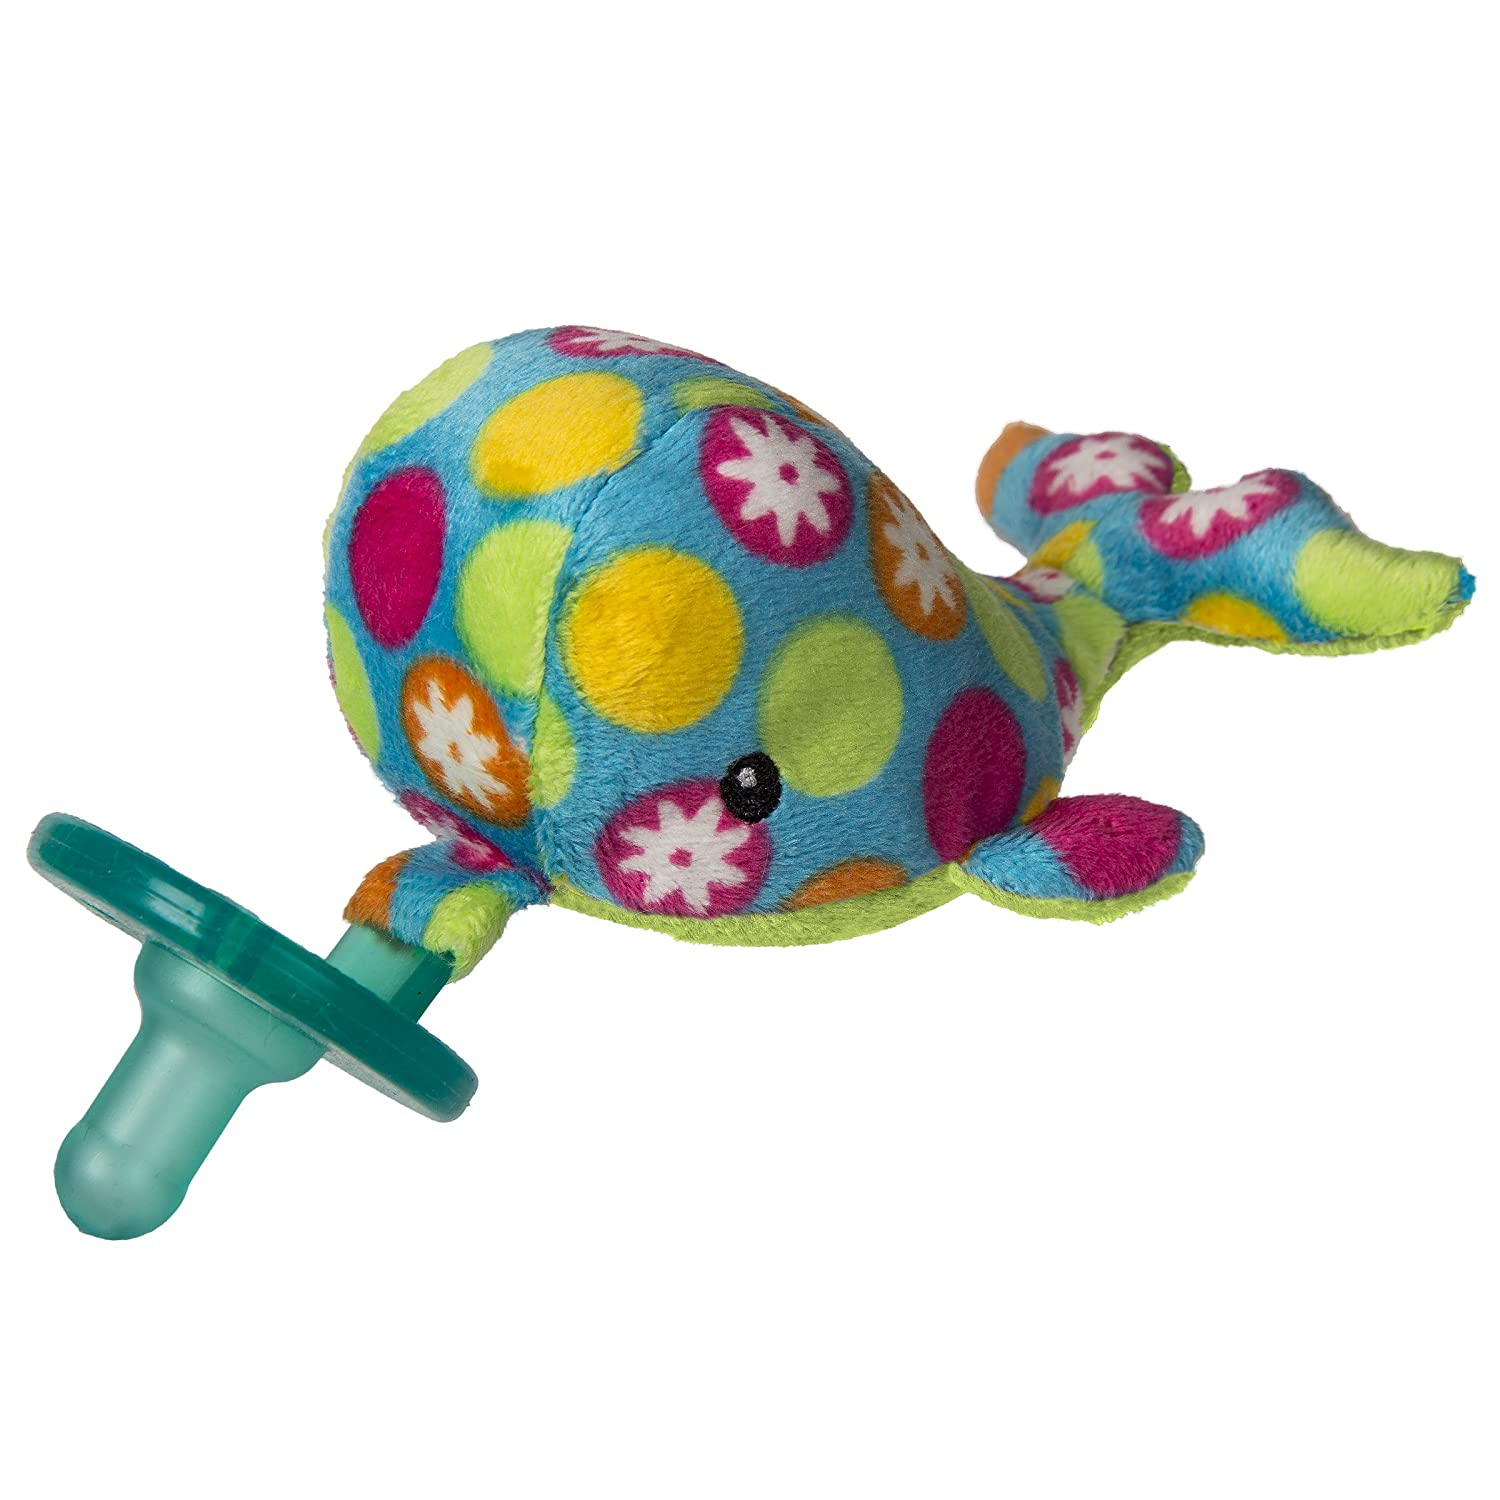 Wubbanub Soft Toy and Pacifier, Bubbly Whale 41940